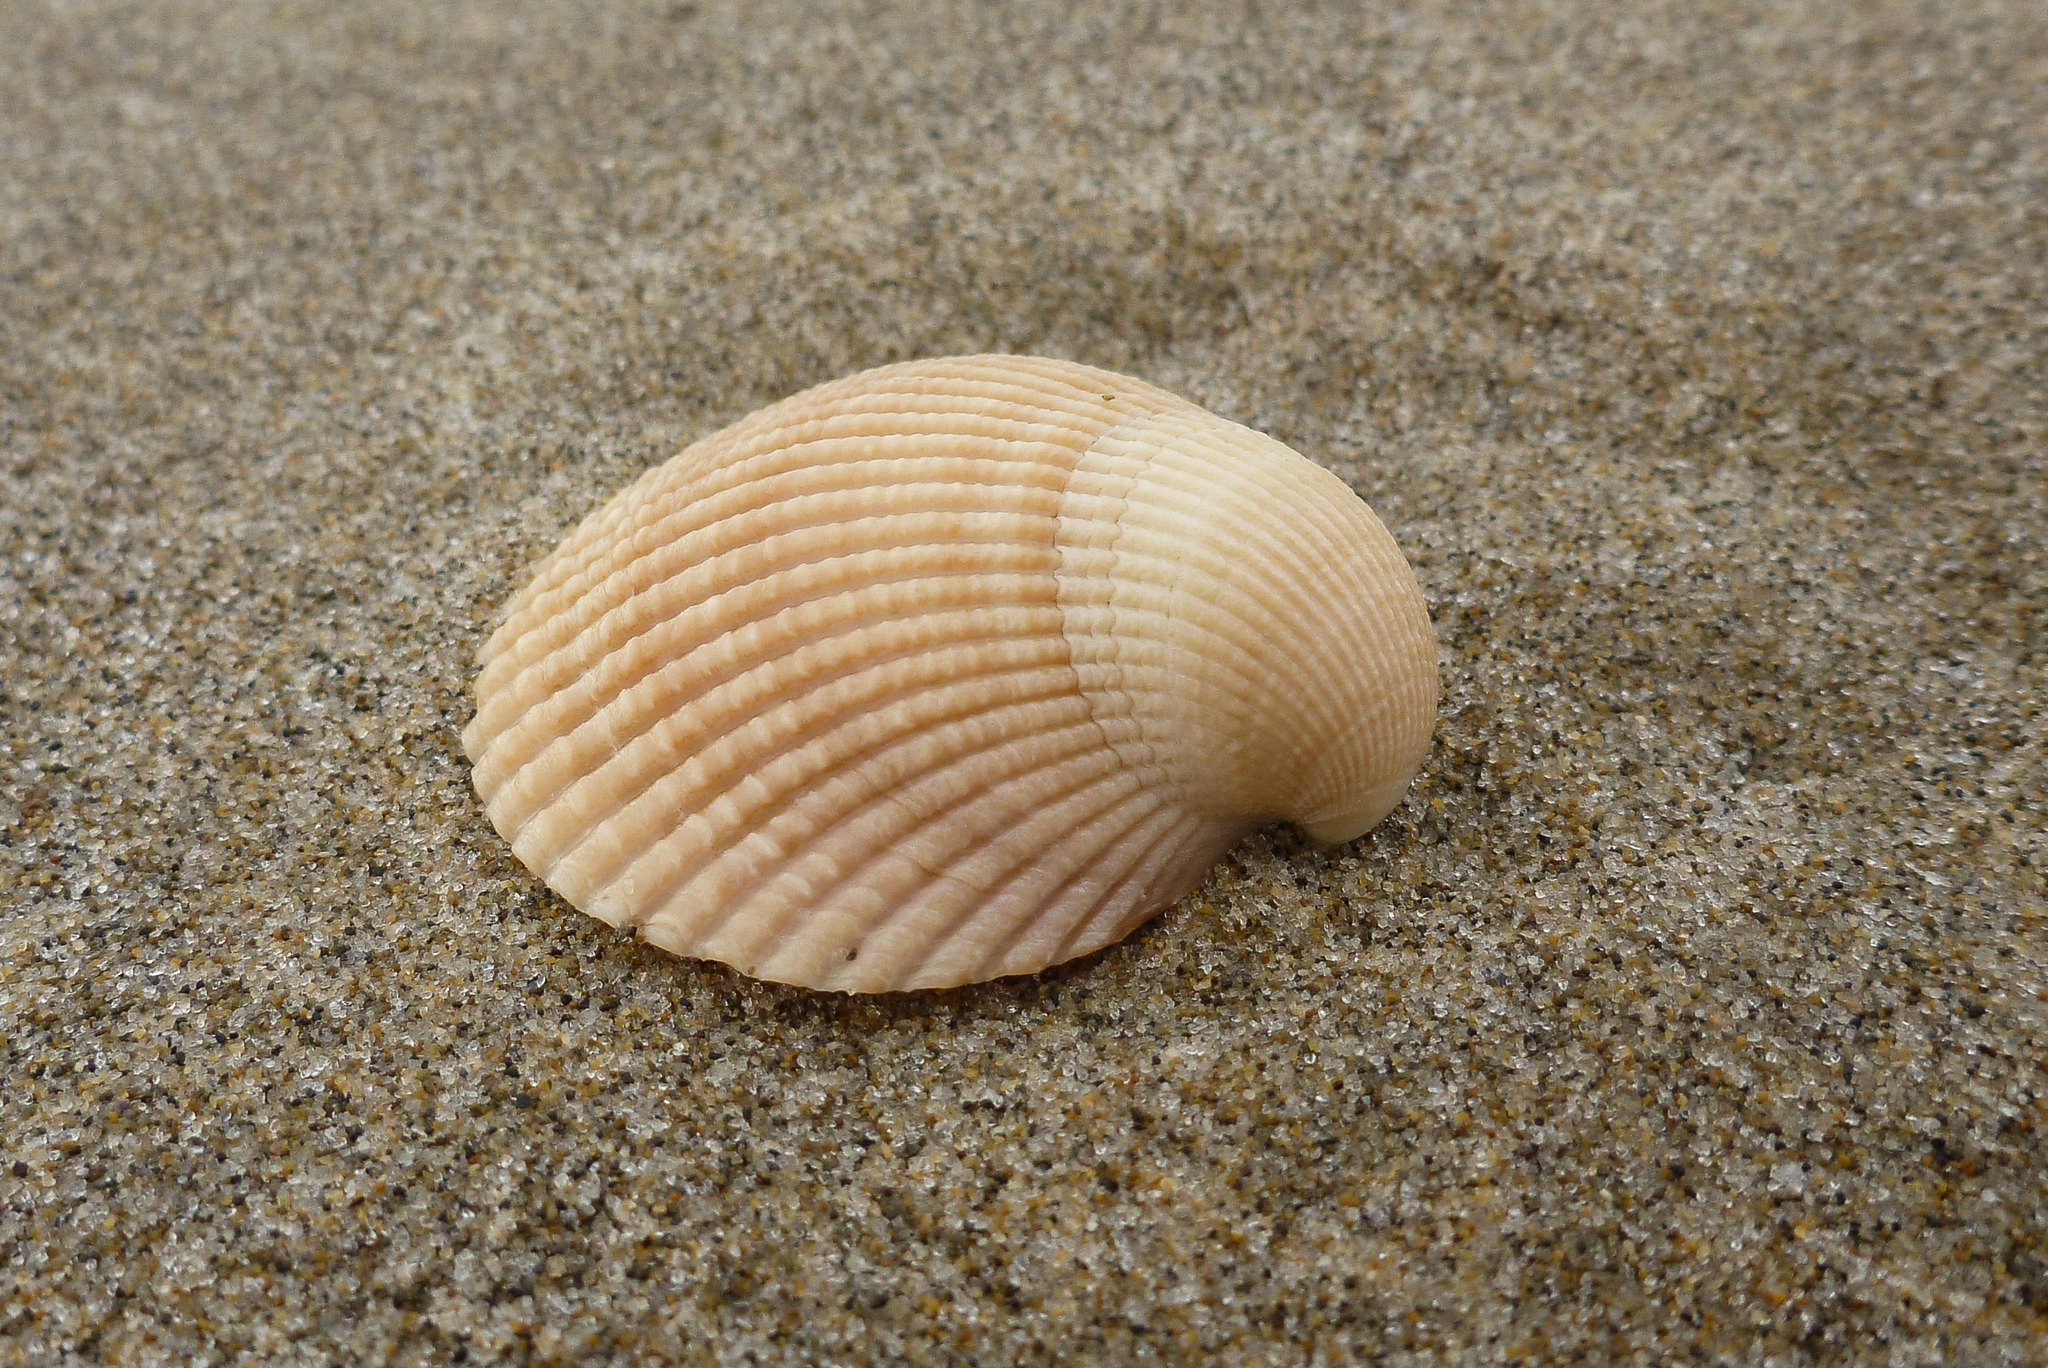 Cockle shell on sand